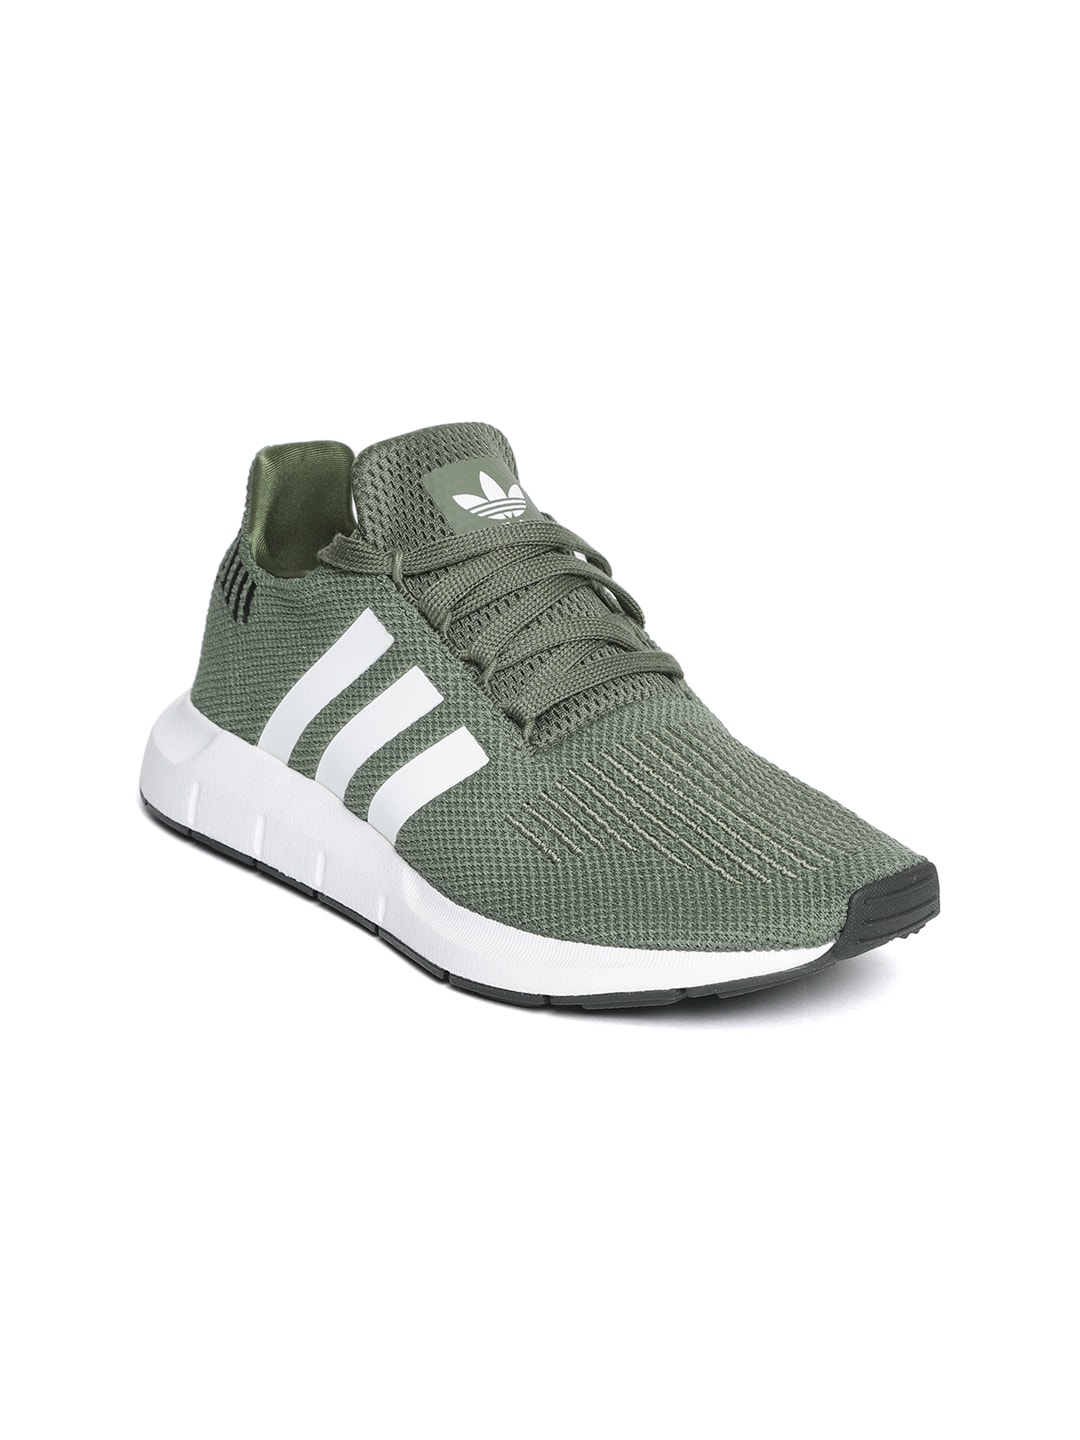 6571582cc45 Adidas Shoes - Buy Adidas Shoes for Men   Women Online - Myntra